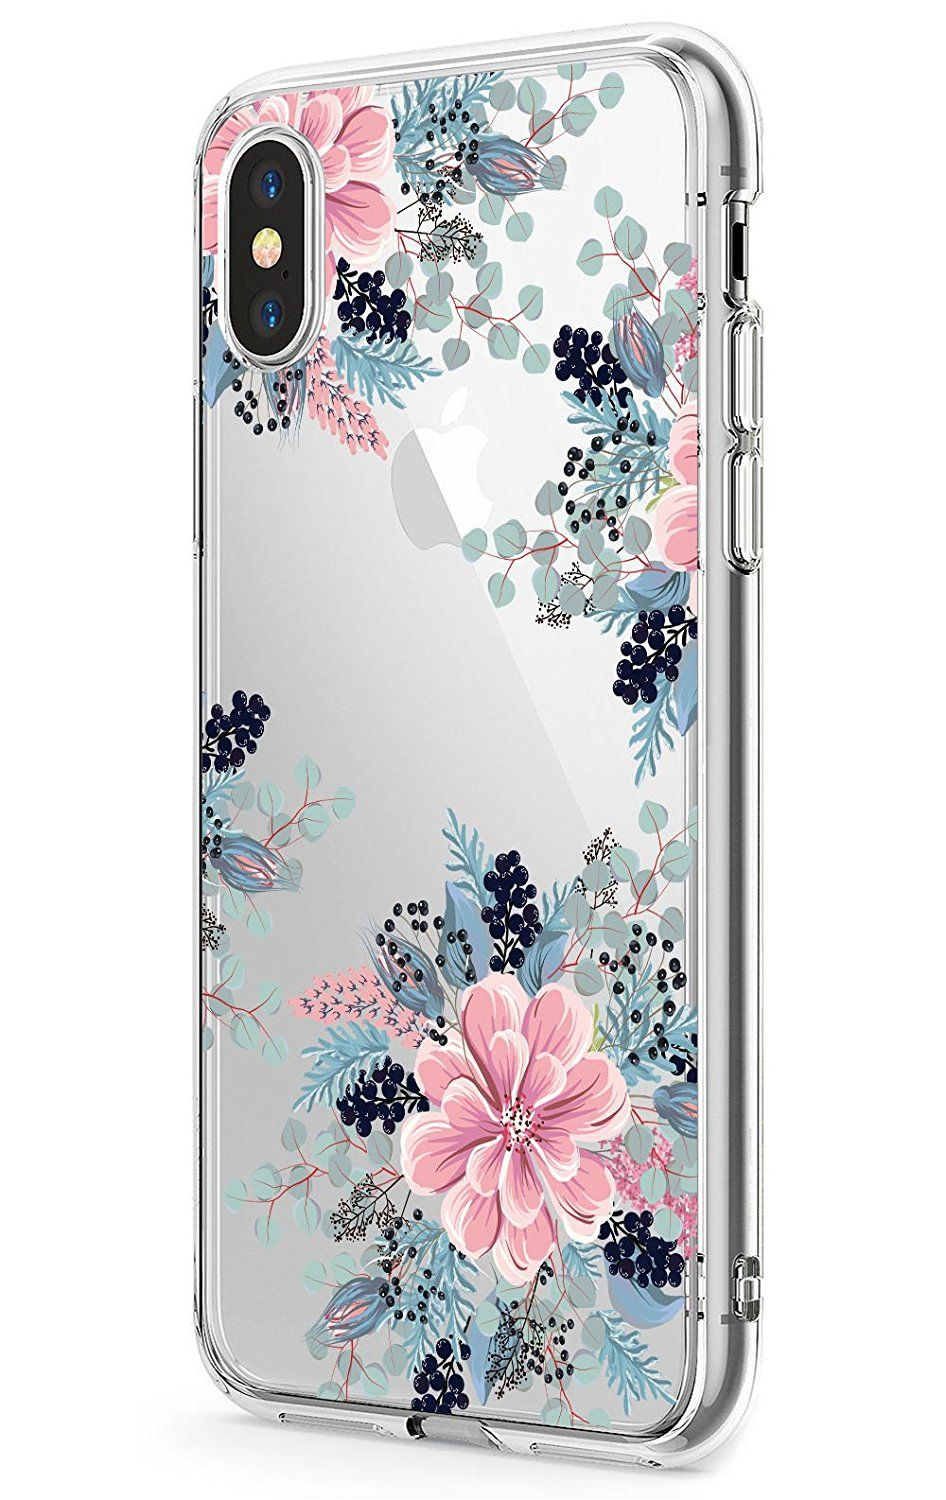 Iphone X Case Jaholan Girls Floral Design Clear Tpu Soft Slim Flexible Silicone Glossy Phone Case For Apple Iphone X Girly Phone Cases Iphone Apple Phone Case